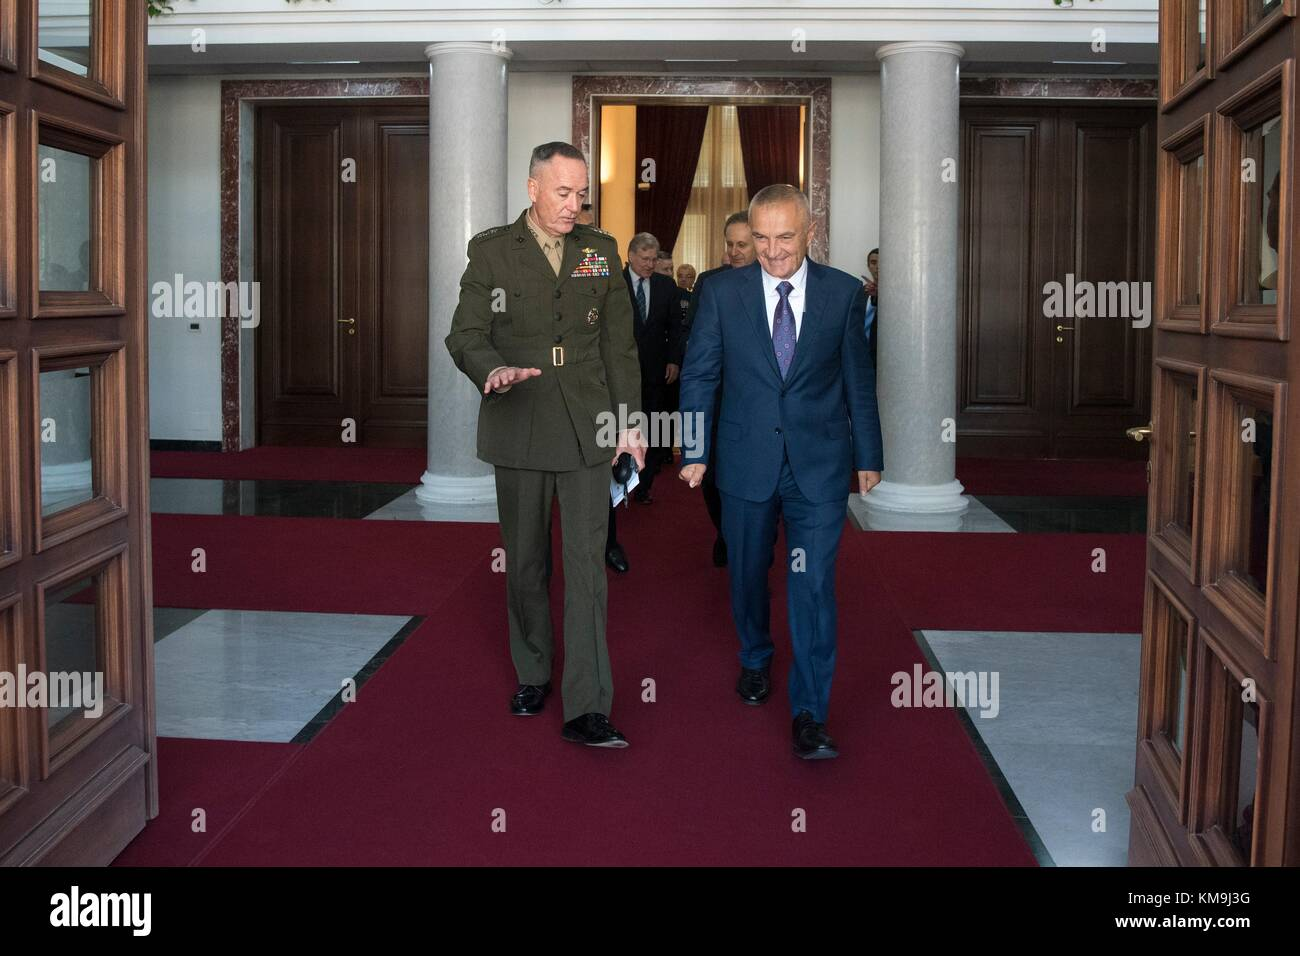 U.S. Joint Chiefs of Staff Chairman Joseph Dunford (left) meets with Albanian President Ilir Meta before the North - Stock Image